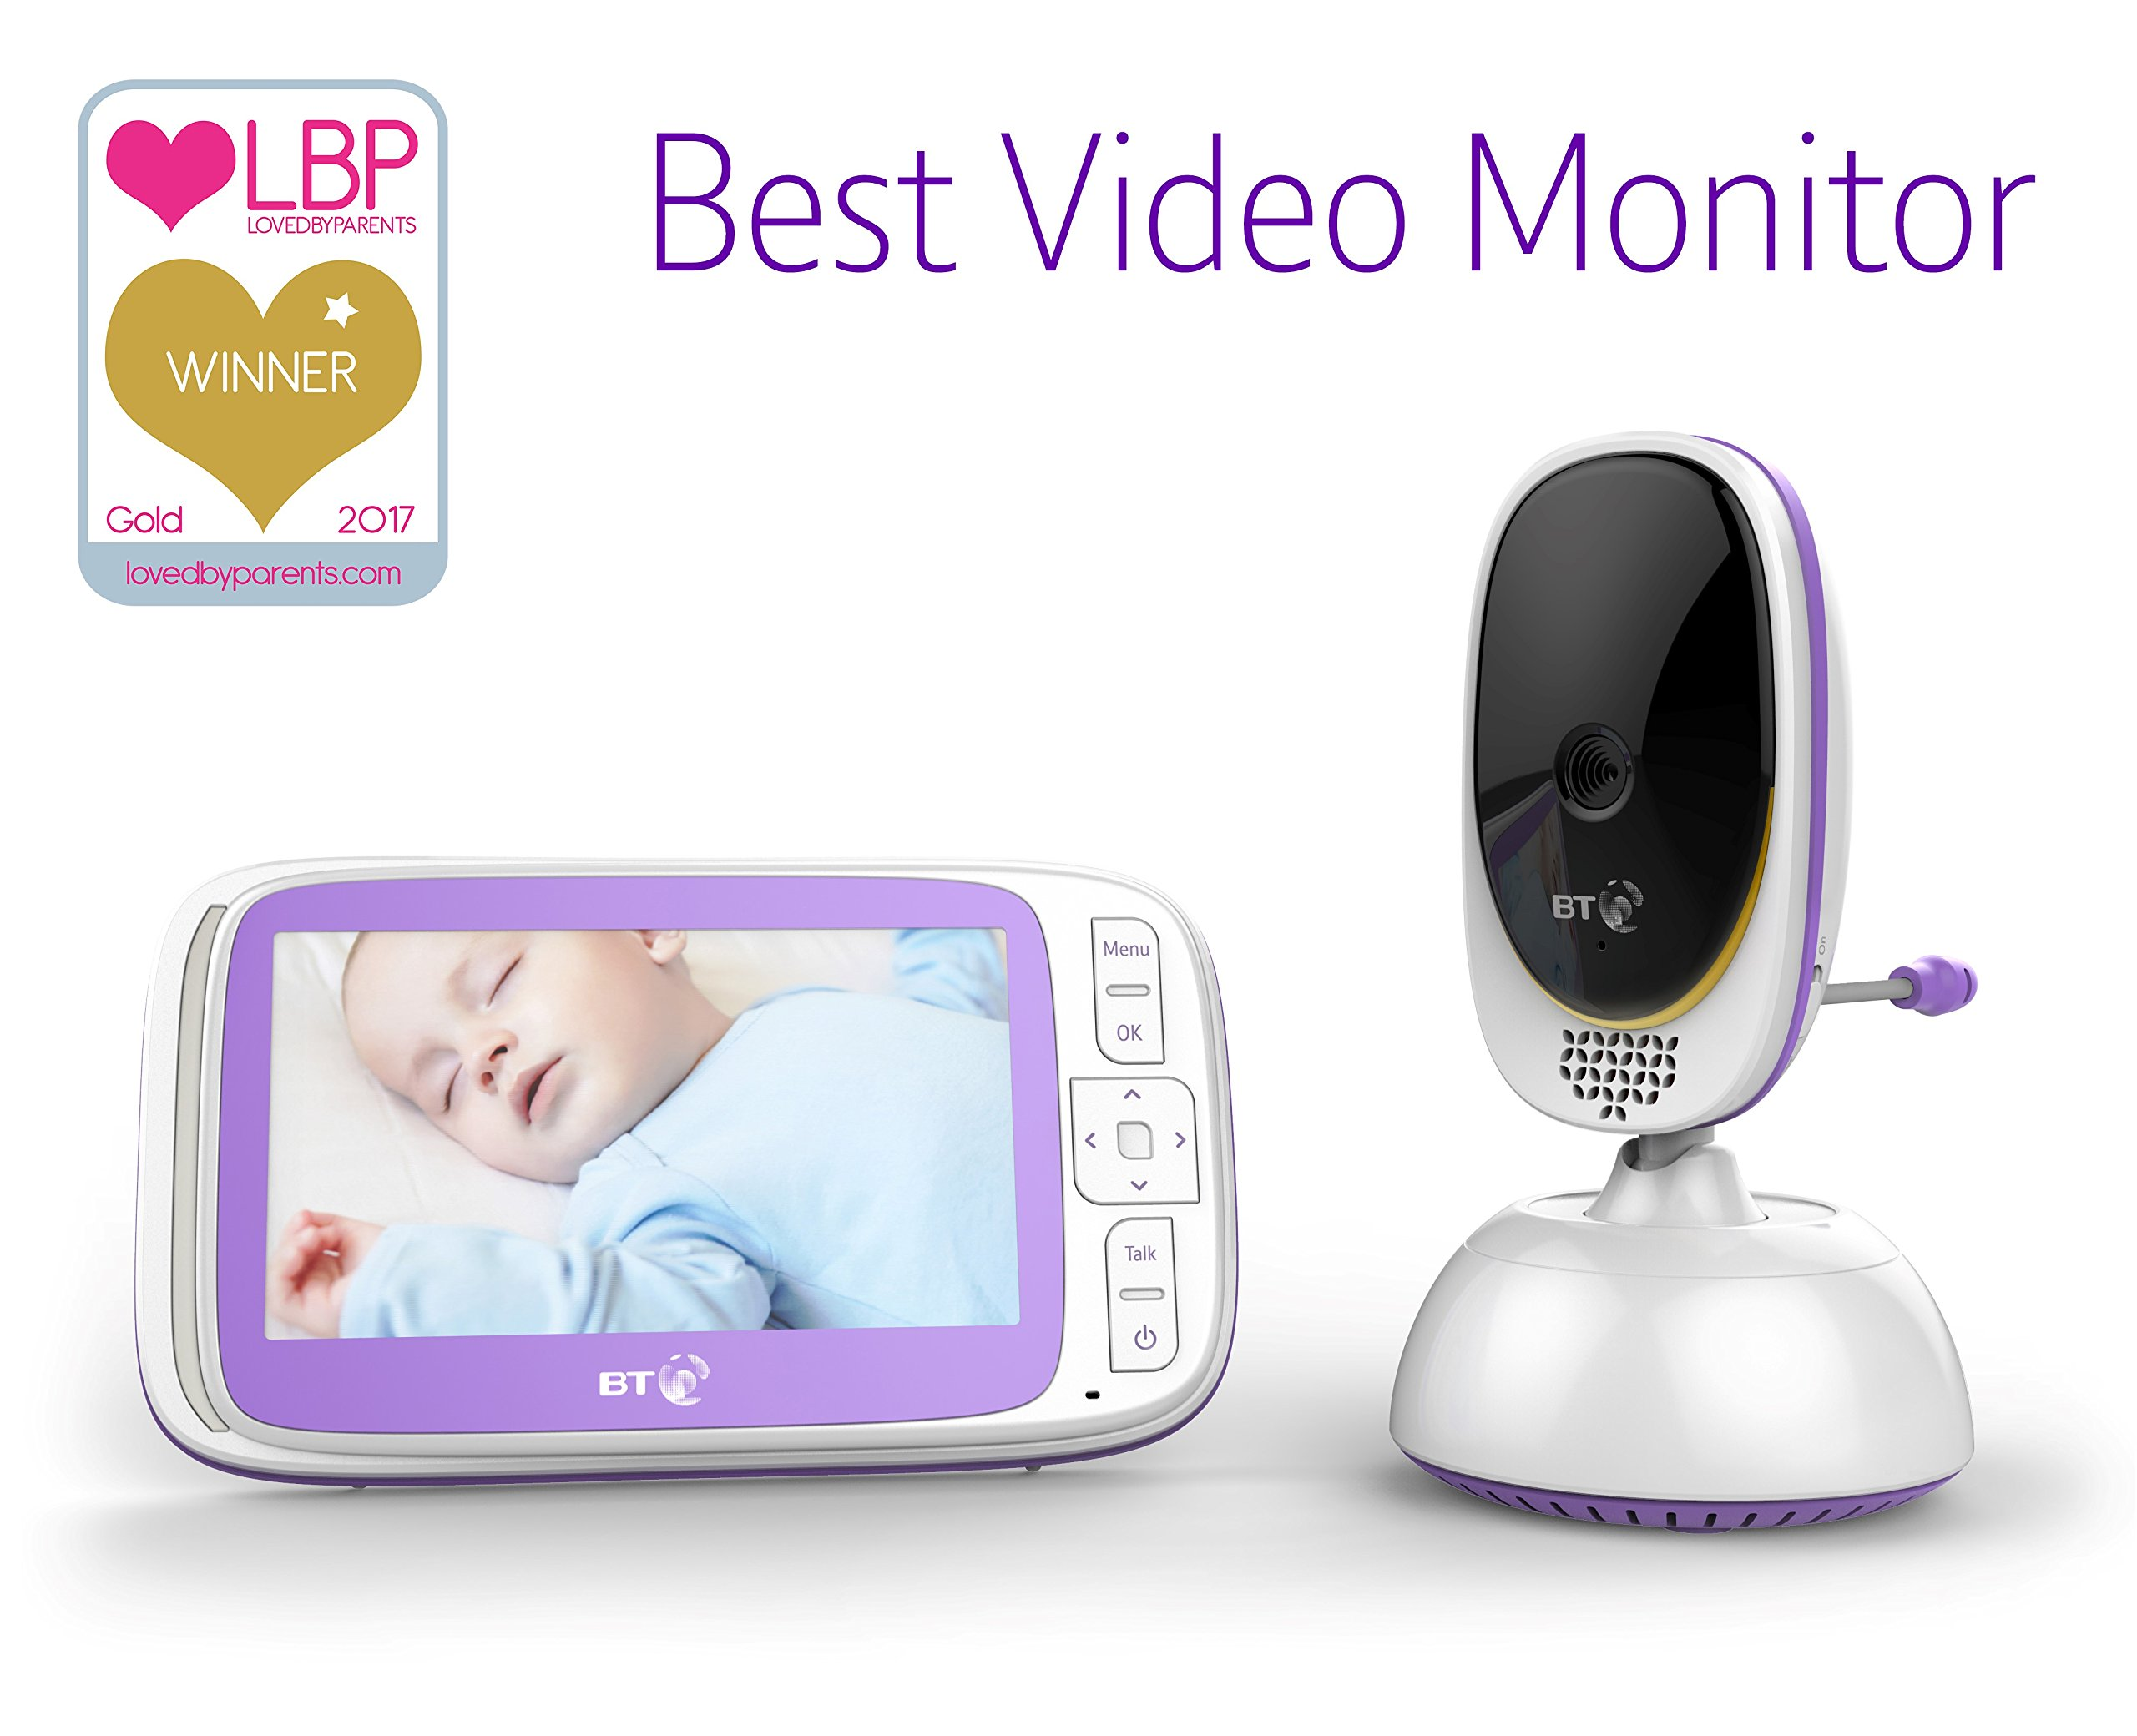 BT Video Baby Monitor 6000 BT 5 inch screen Temperature indication / 5 lullabies Remote control pan and tilt mechanism 6